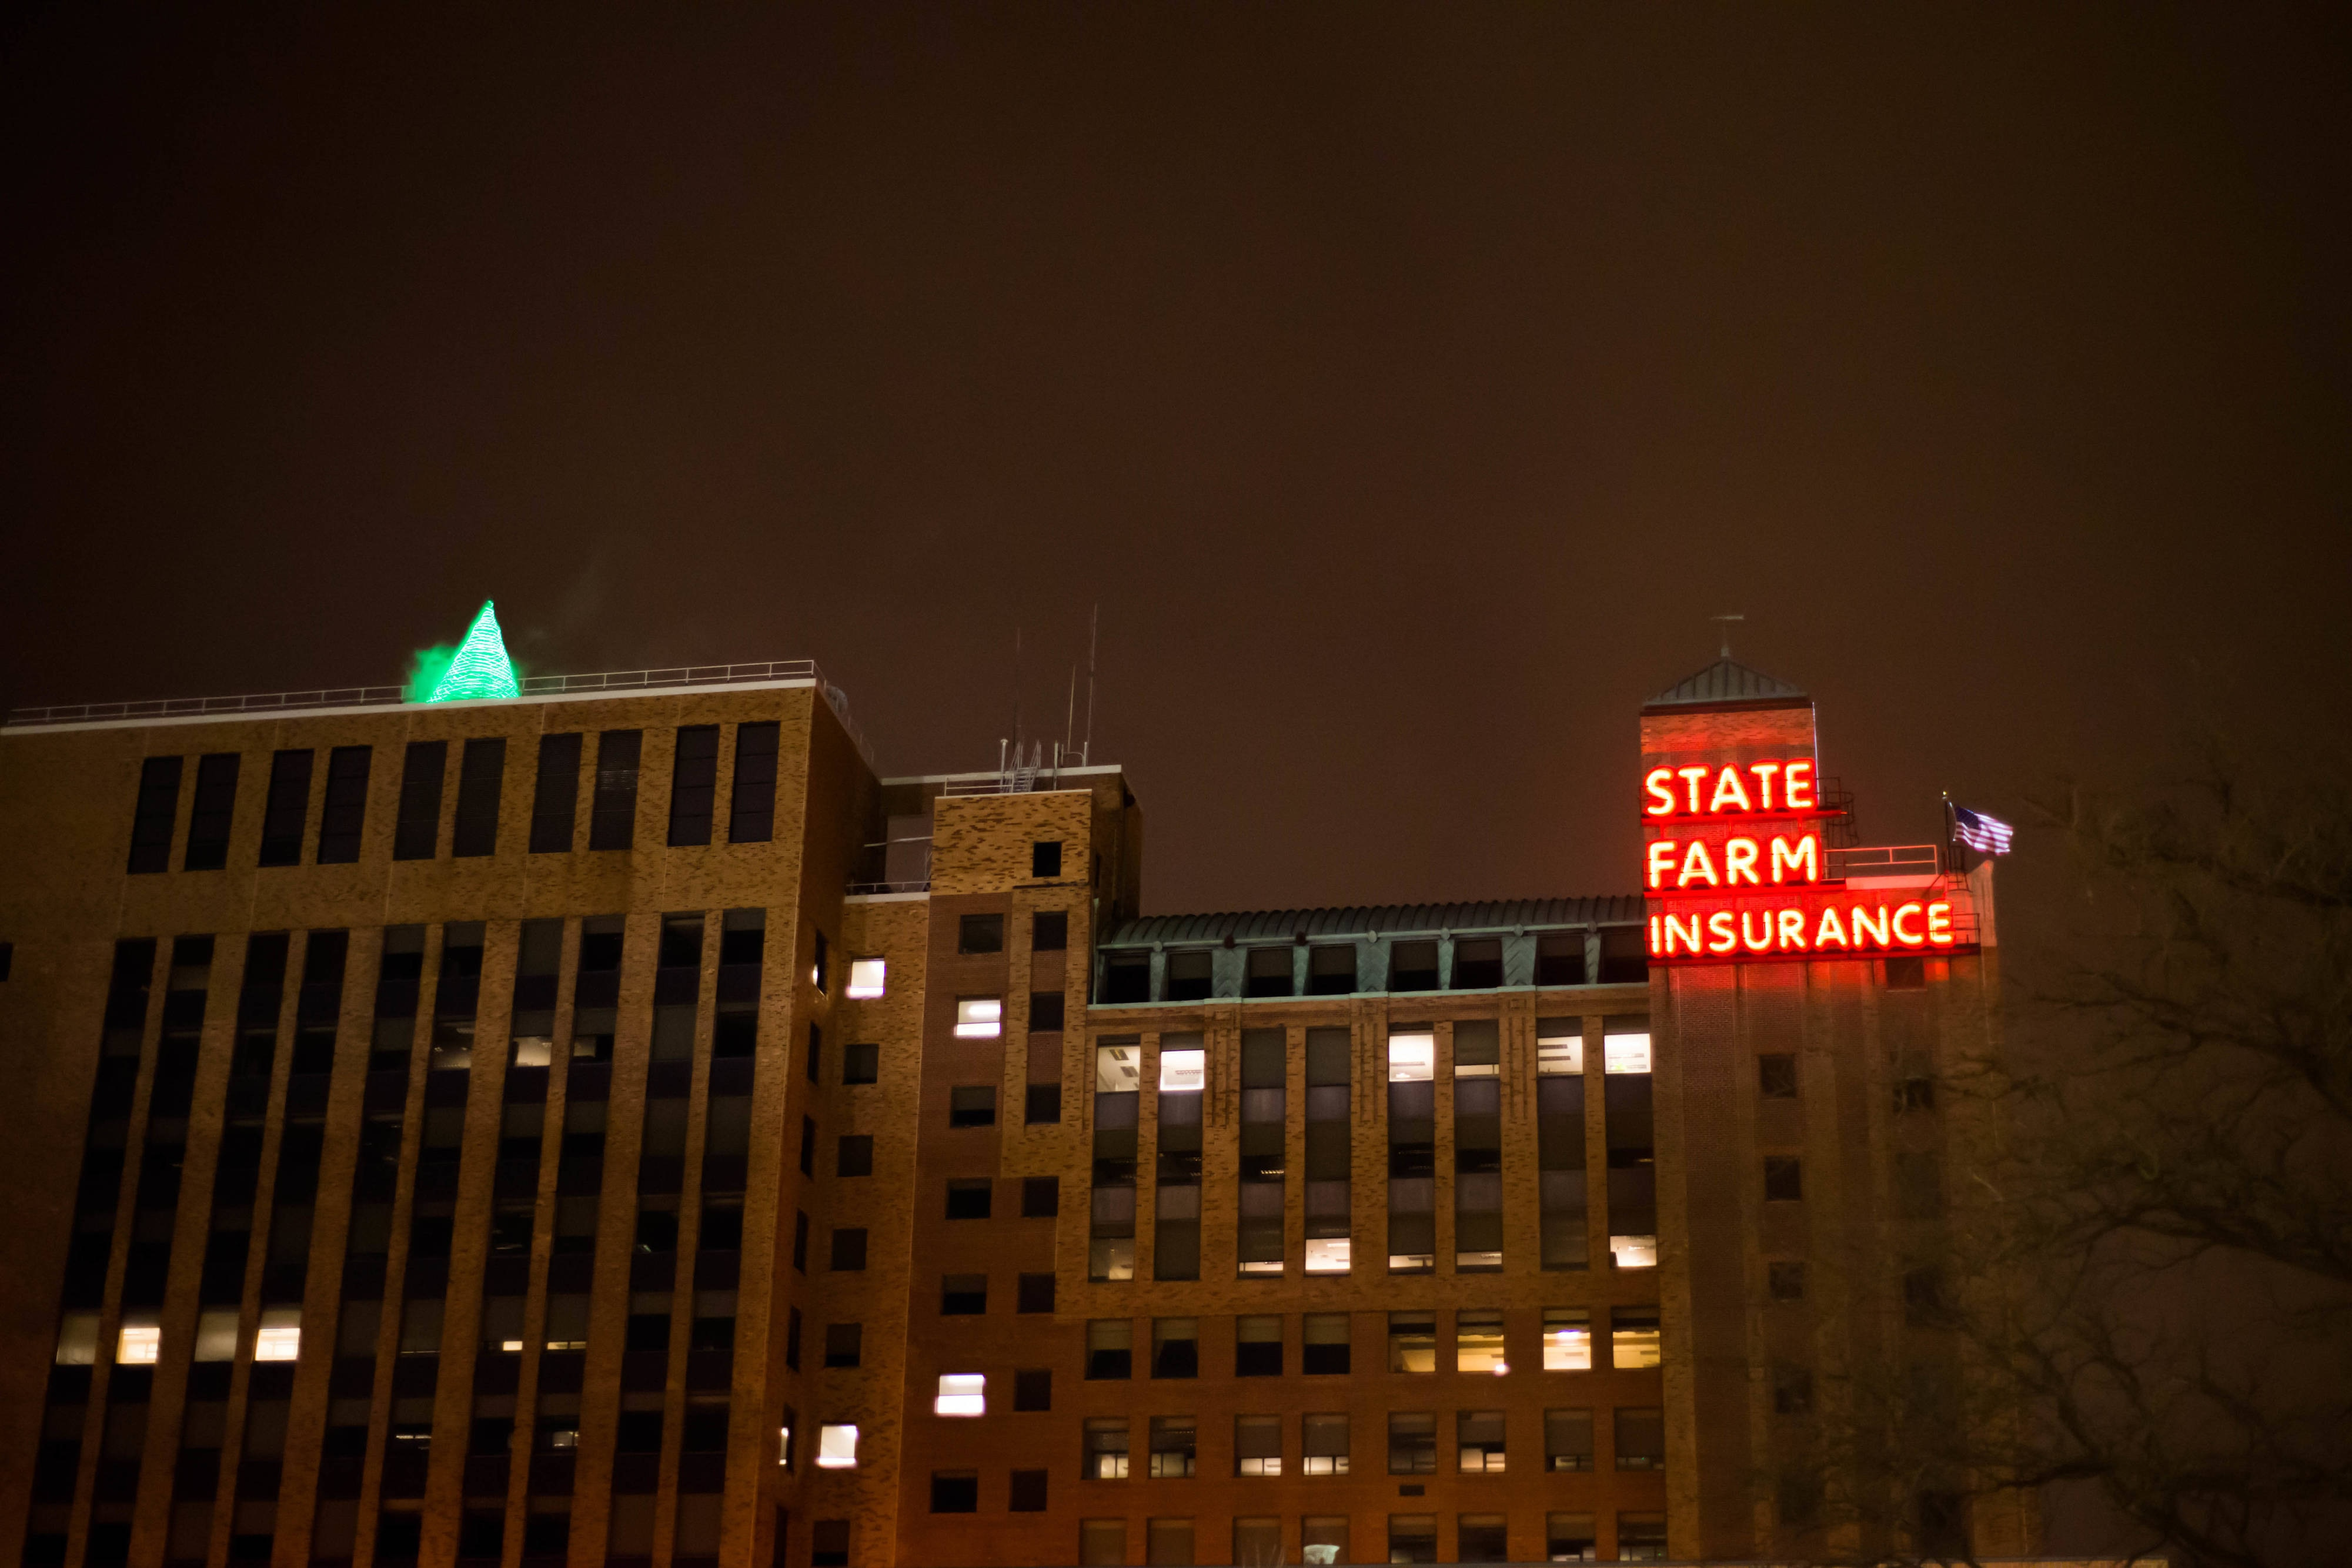 State Farm Insurance Downtown Building